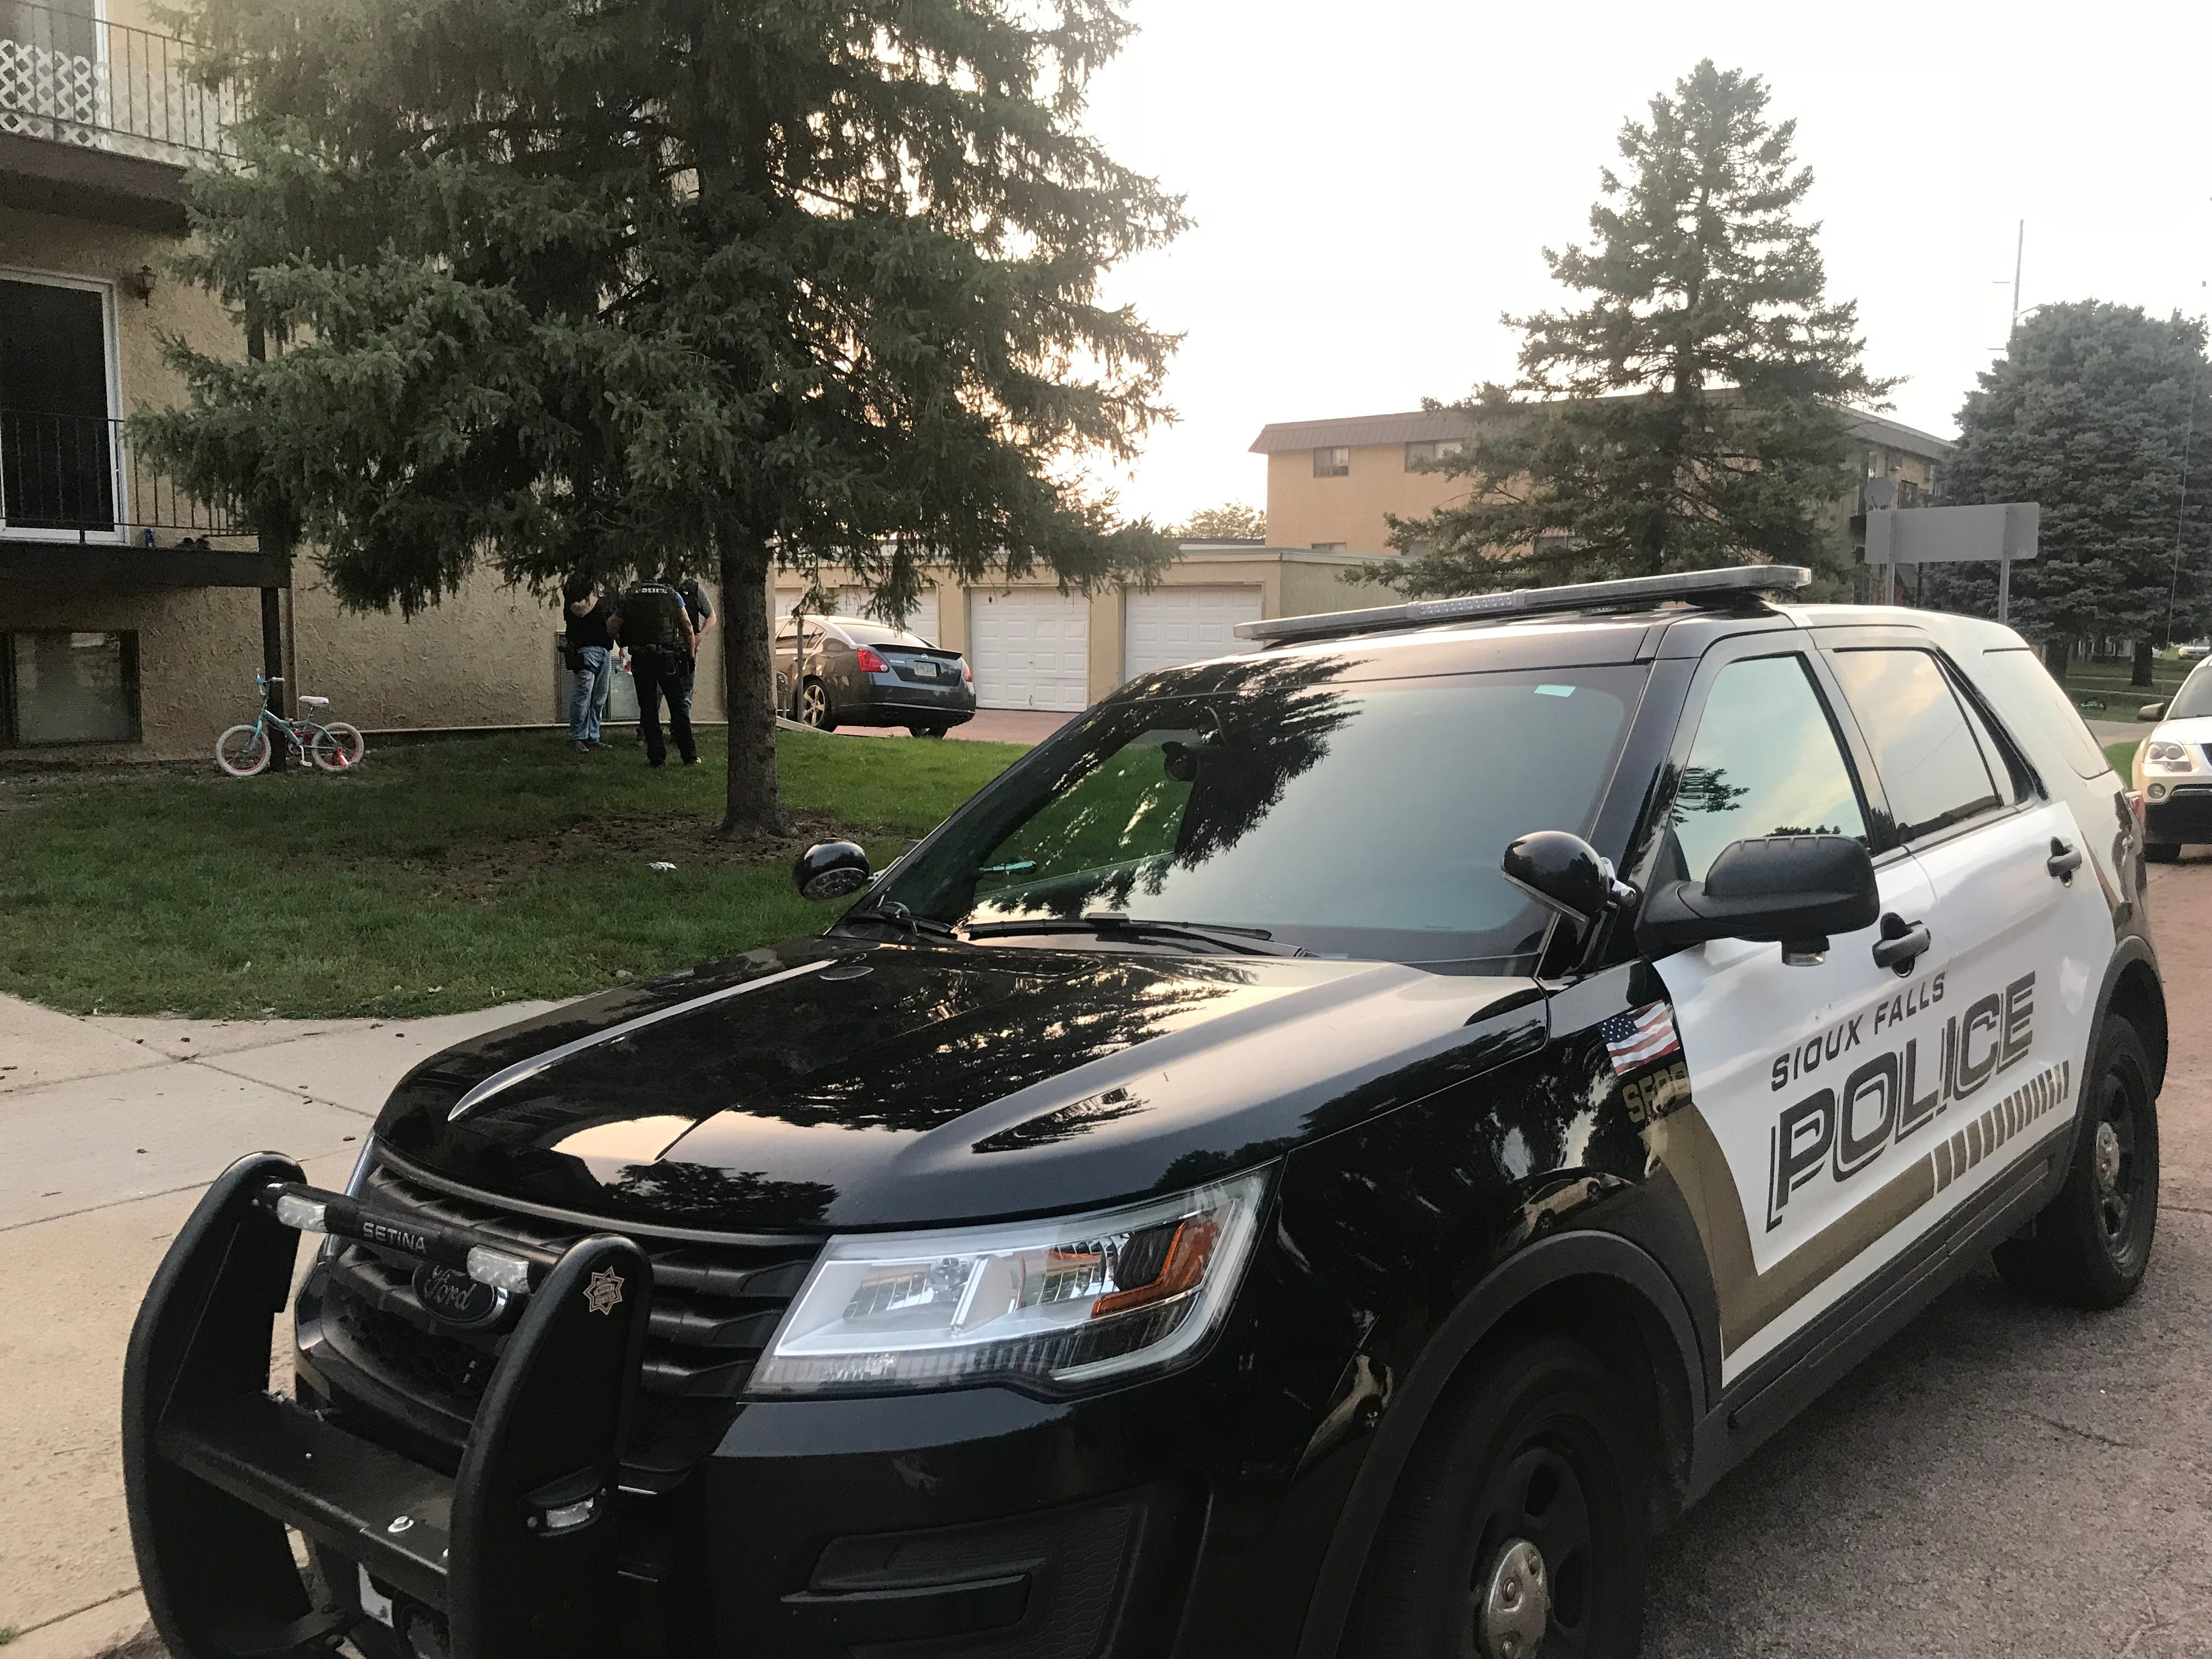 Homicide suspect arrested in northern Sioux Falls | Argus Leader